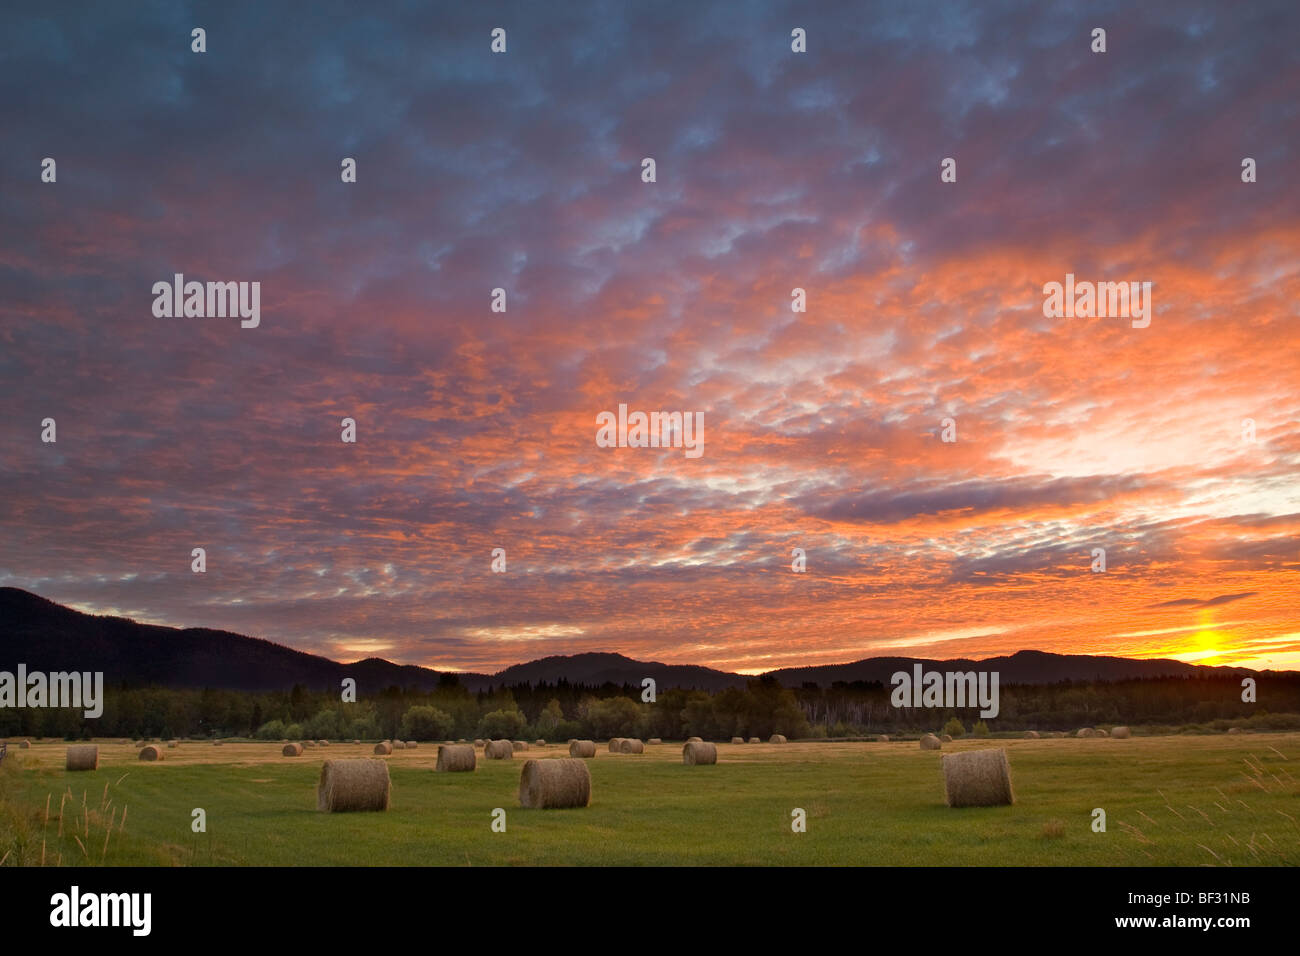 Agriculture - Vivid sunrise over a field with round hay bales and the Whitefish Mountain Range in the background - Stock Image